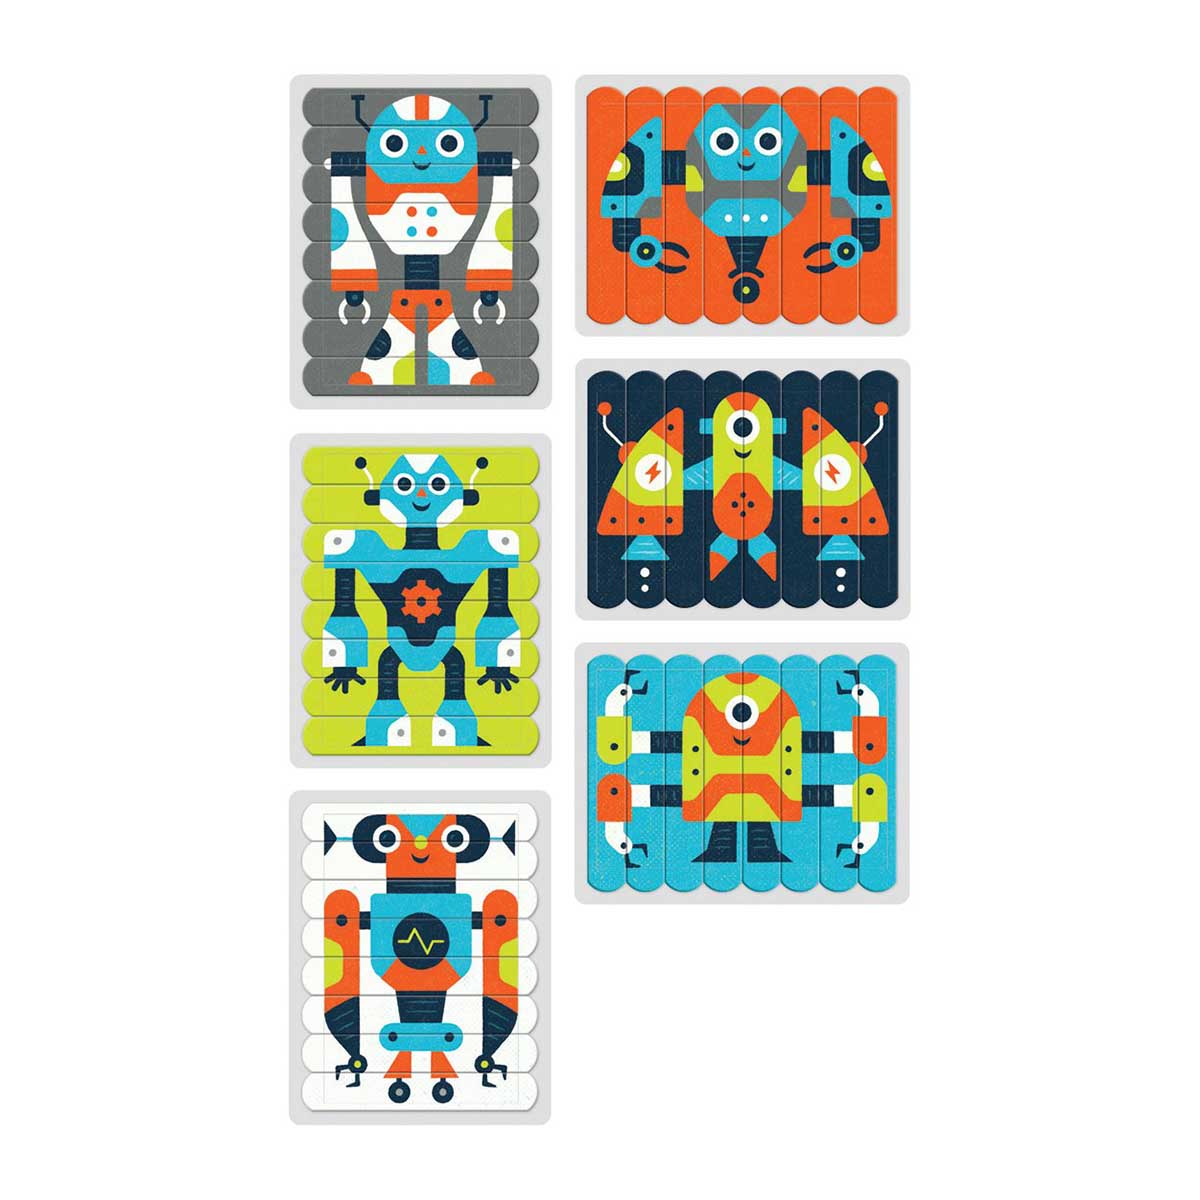 Robotics Lab Jigsaw Puzzle Puzzlewarehouse Com